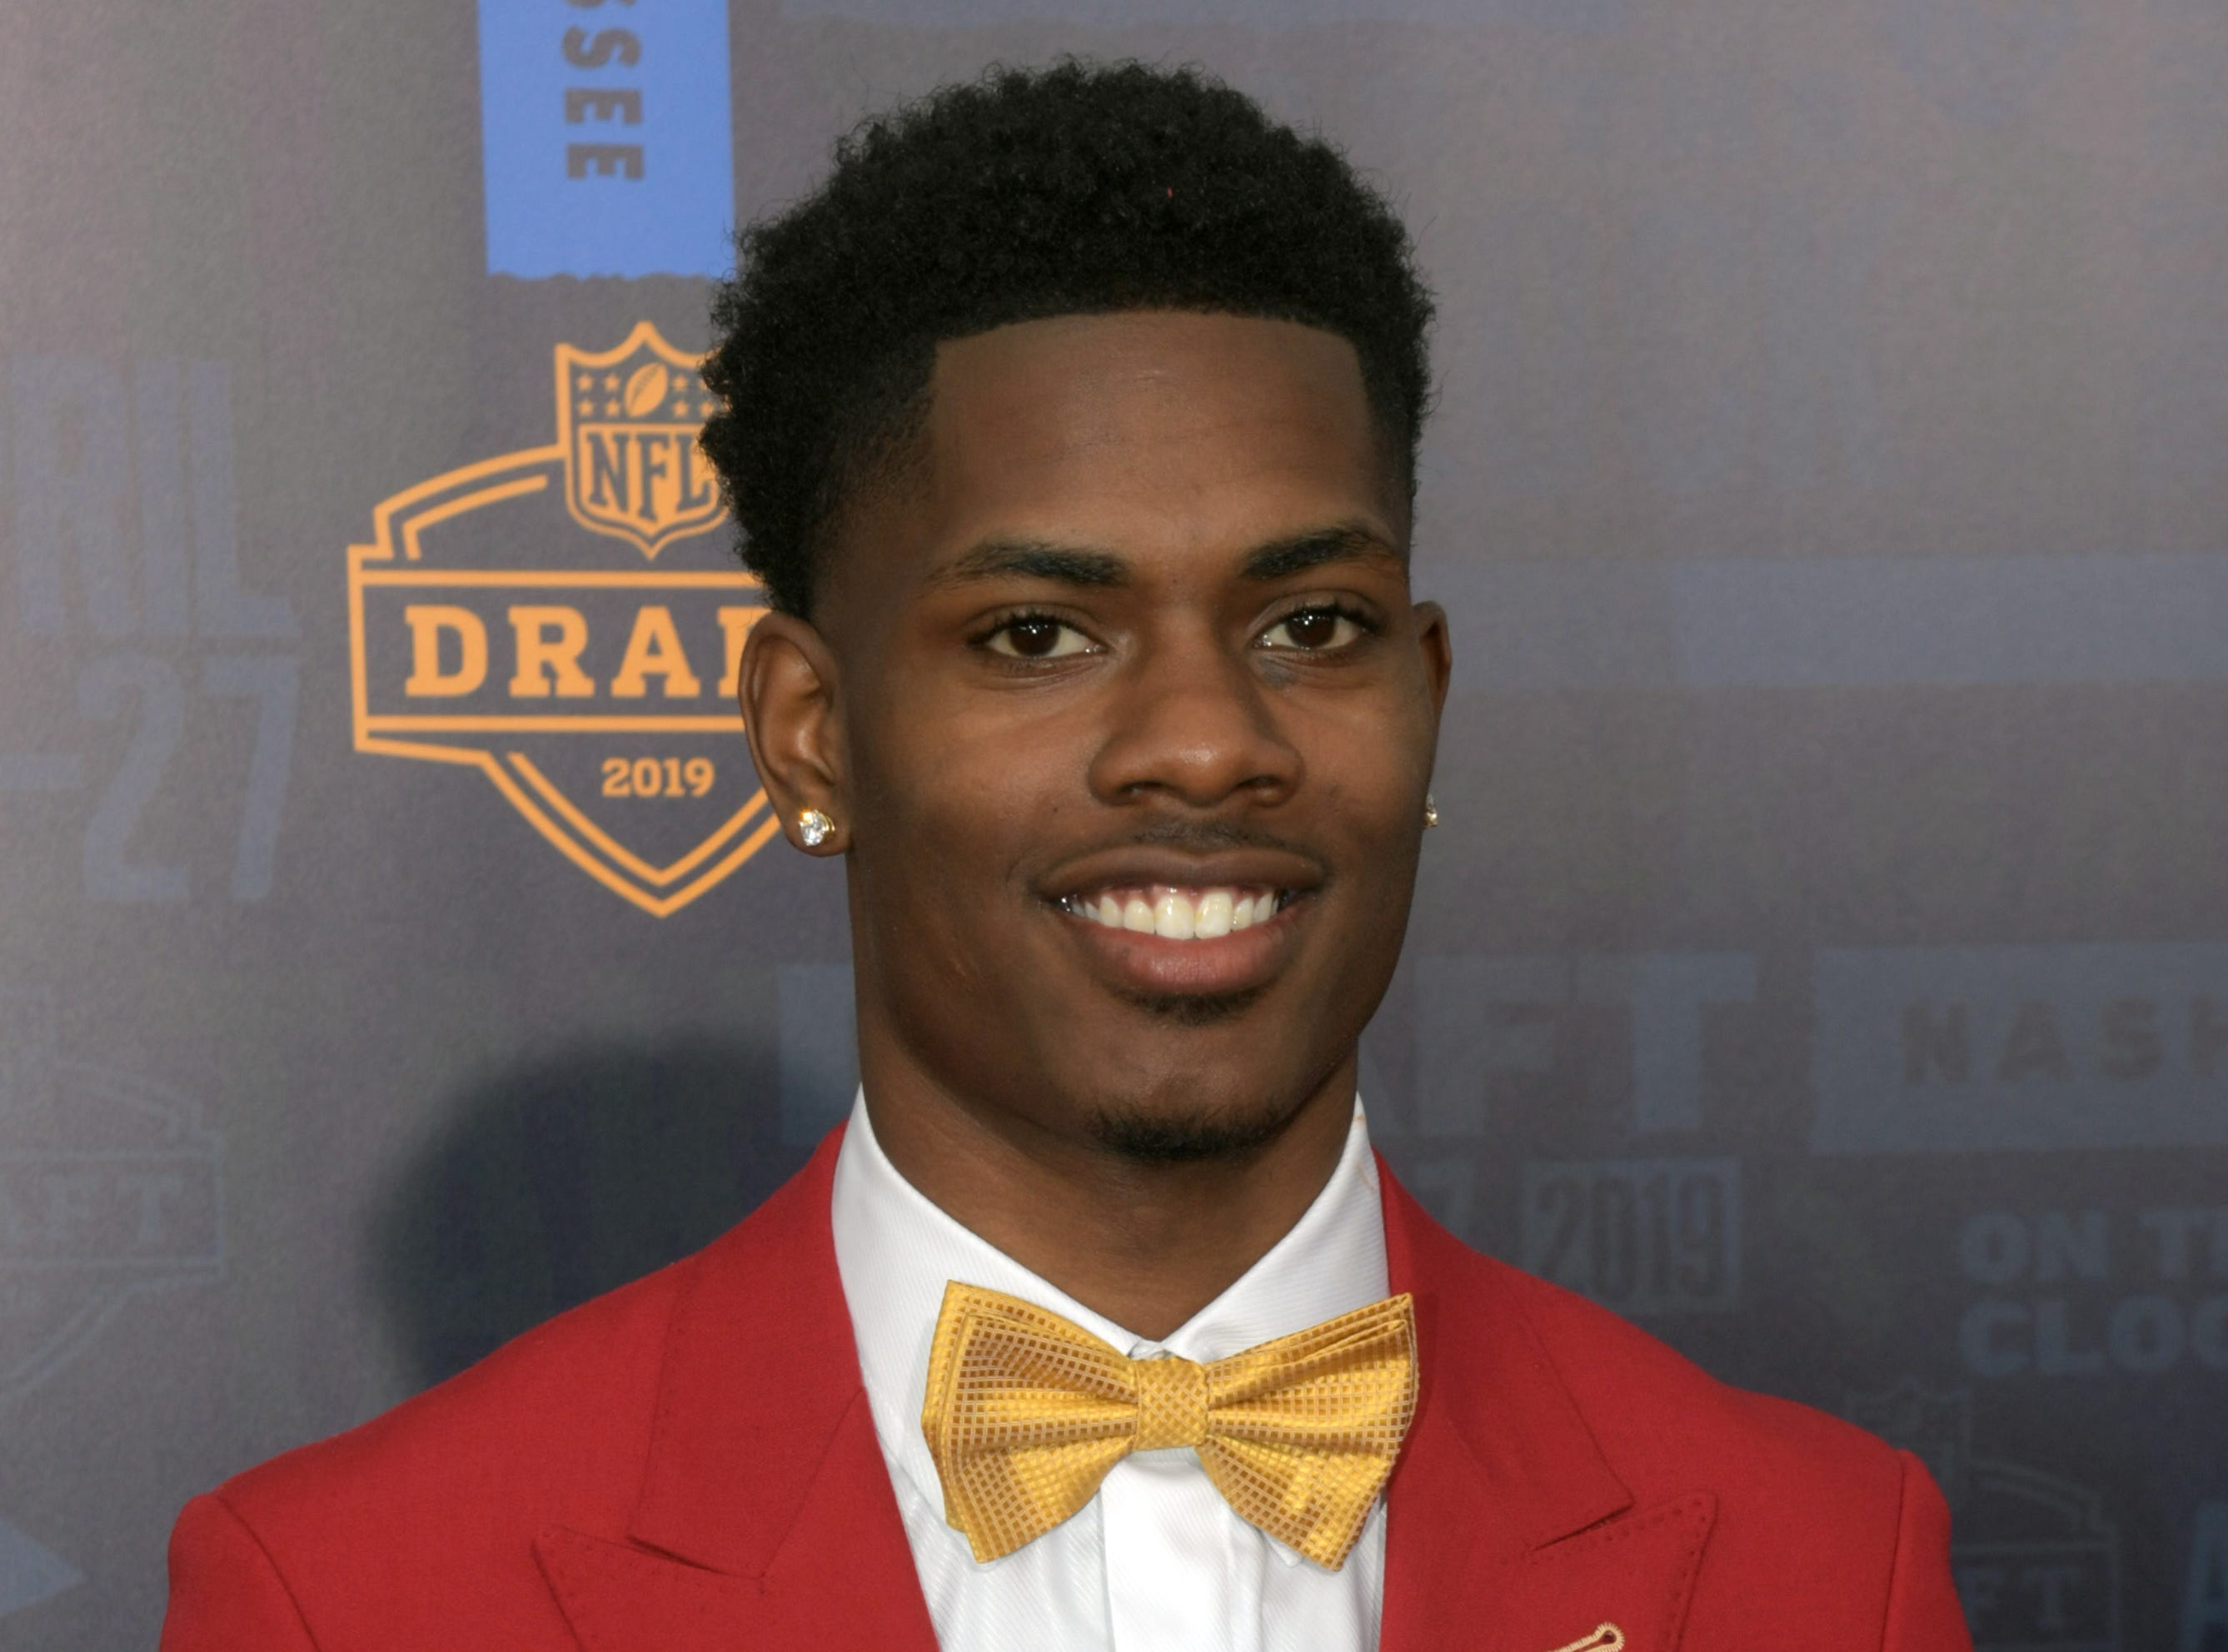 Apr 25, 2019; Nashville, TN, USA; Greedy Williams (Louisiana State) on the red carpet prior to the first round of the 2019 NFL Draft in Downtown Nashville. Mandatory Credit: Kirby Lee-USA TODAY Sports